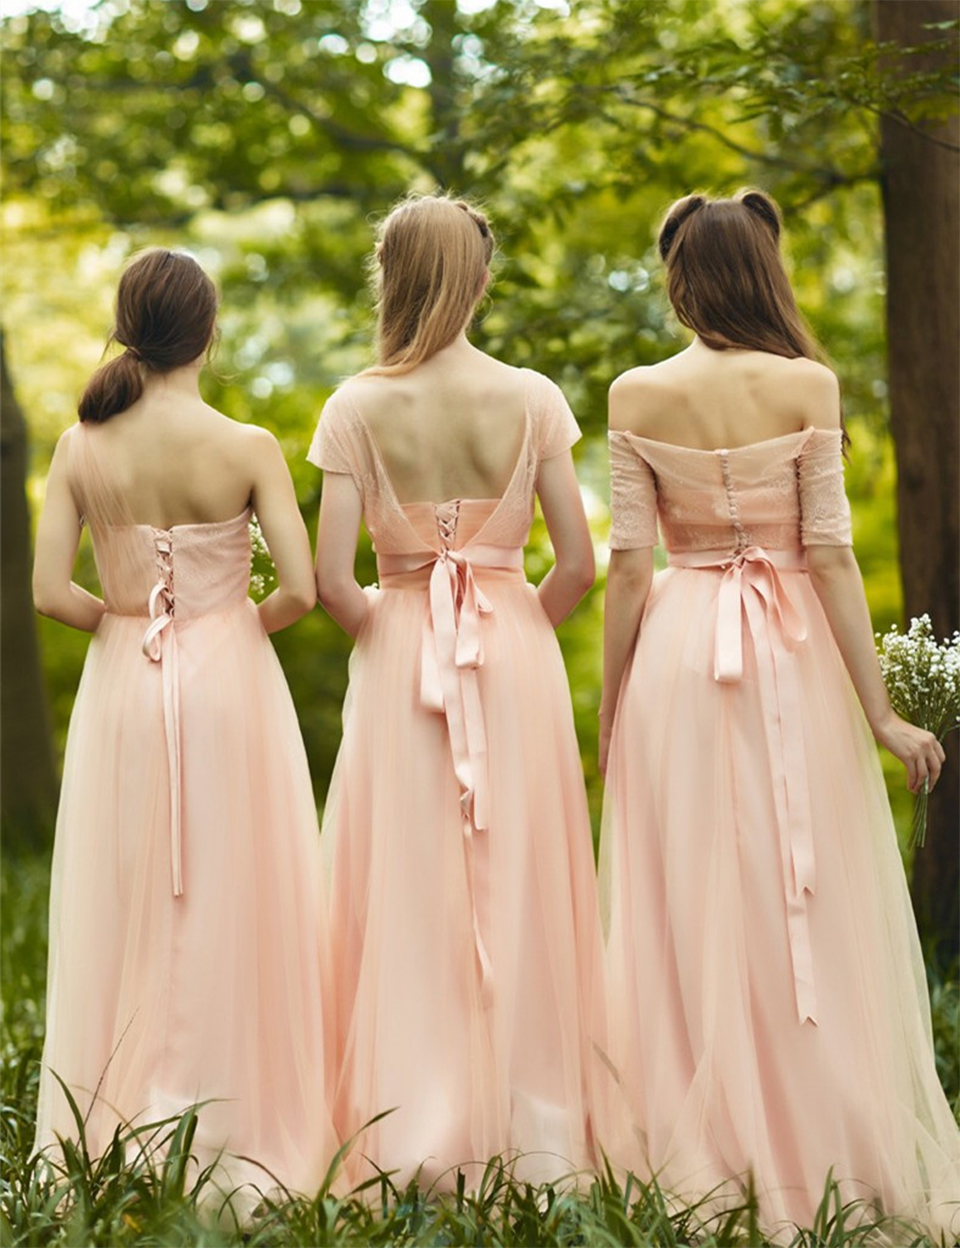 Romantic Long Blush Bridesmaid Dresses With Sleeves Pleat Tulle Lace Cute Bridesmaid  Dress Boat Neck Empire Bridesmaid Gowns B49-in Bridesmaid Dresses from ... fb88a4eae703